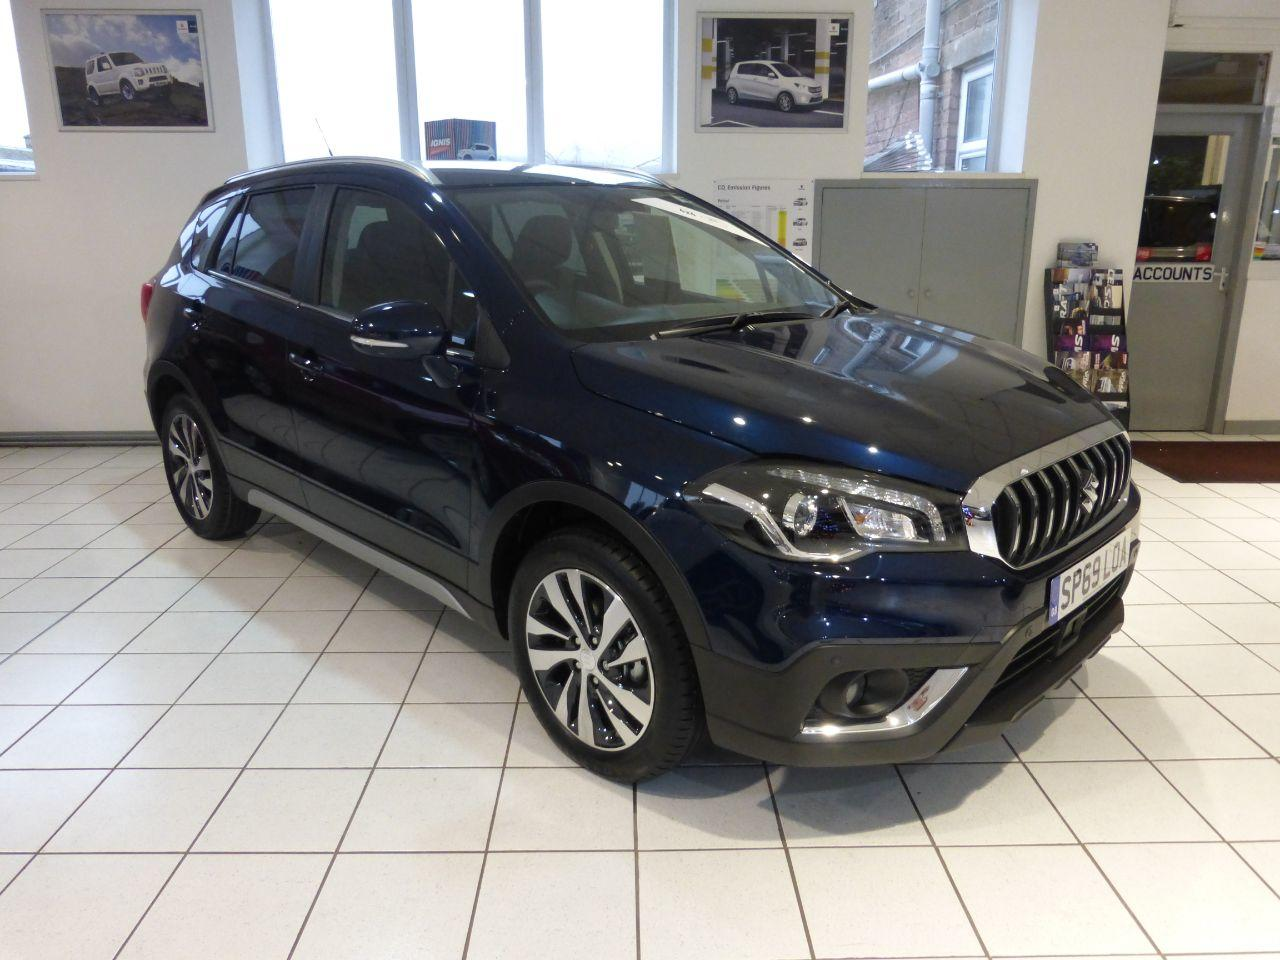 Suzuki Sx4 S-Cross 1.4 Boosterjet SZ5 ALLGRIP 5dr Hatchback Petrol Blue